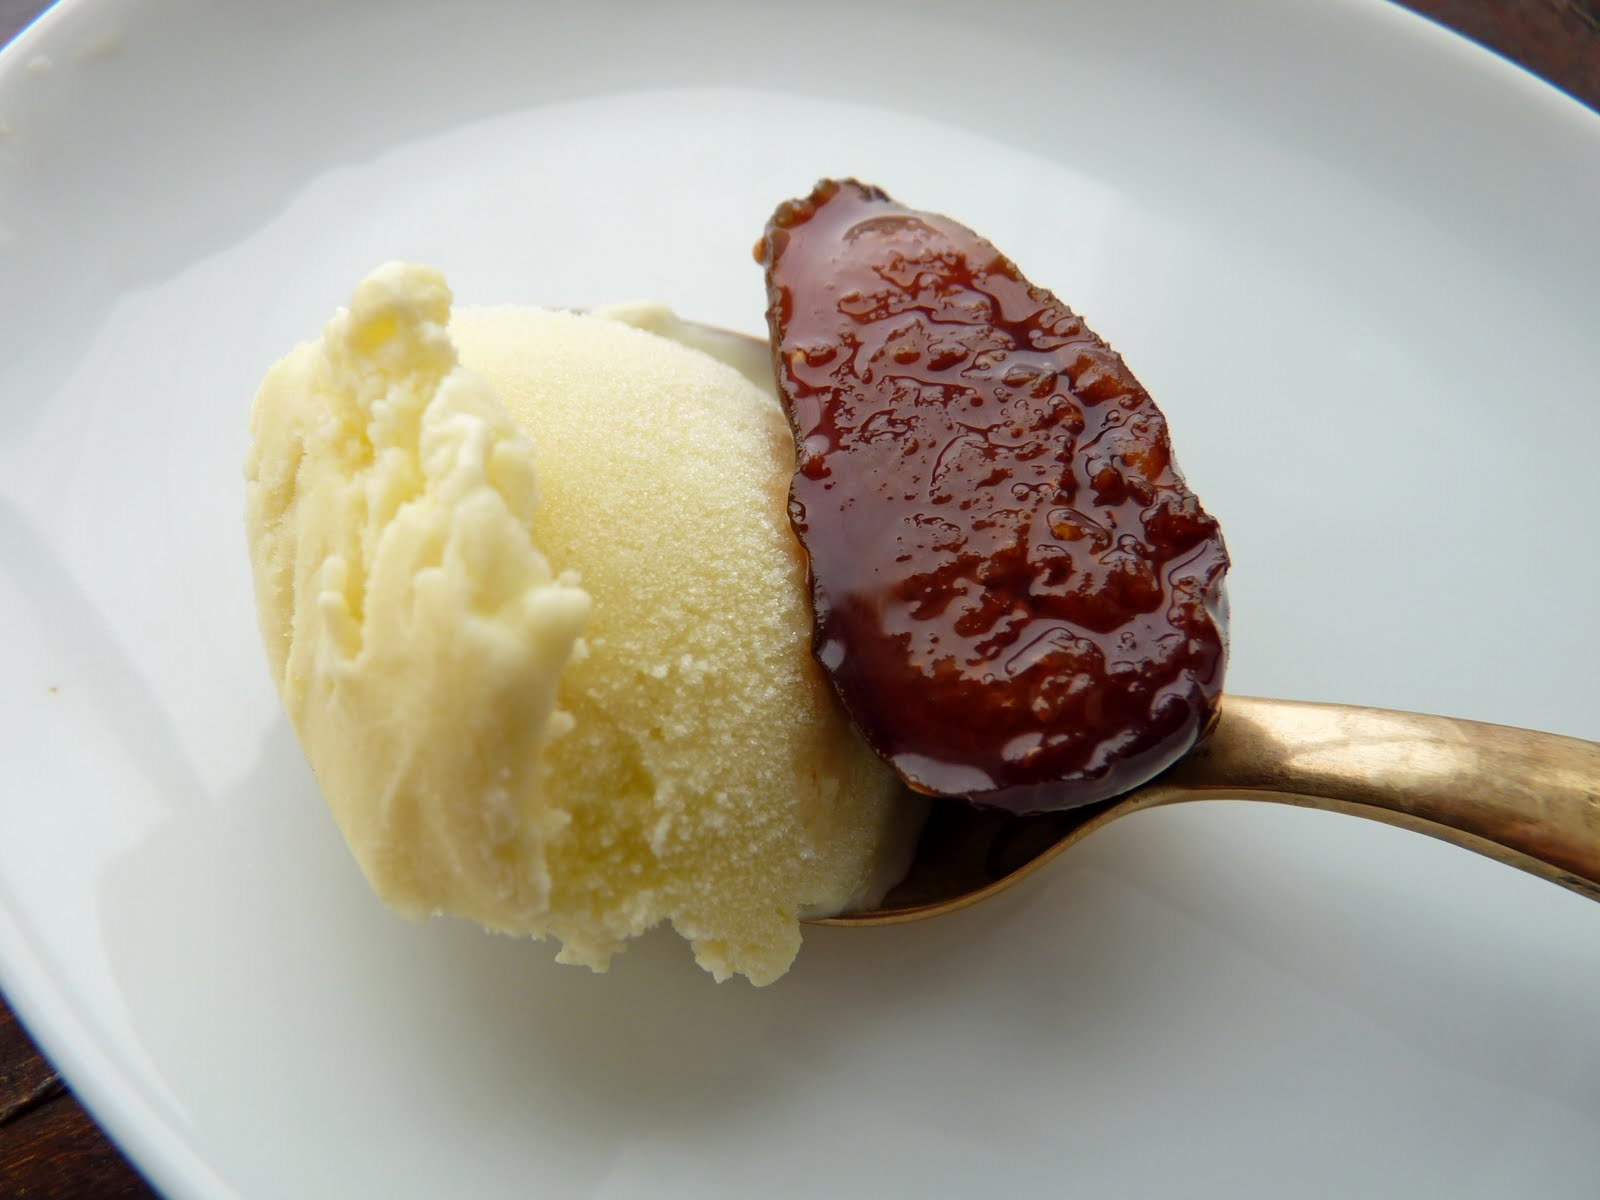 pastry studio: Roasted Figs with Fennel Ice Cream